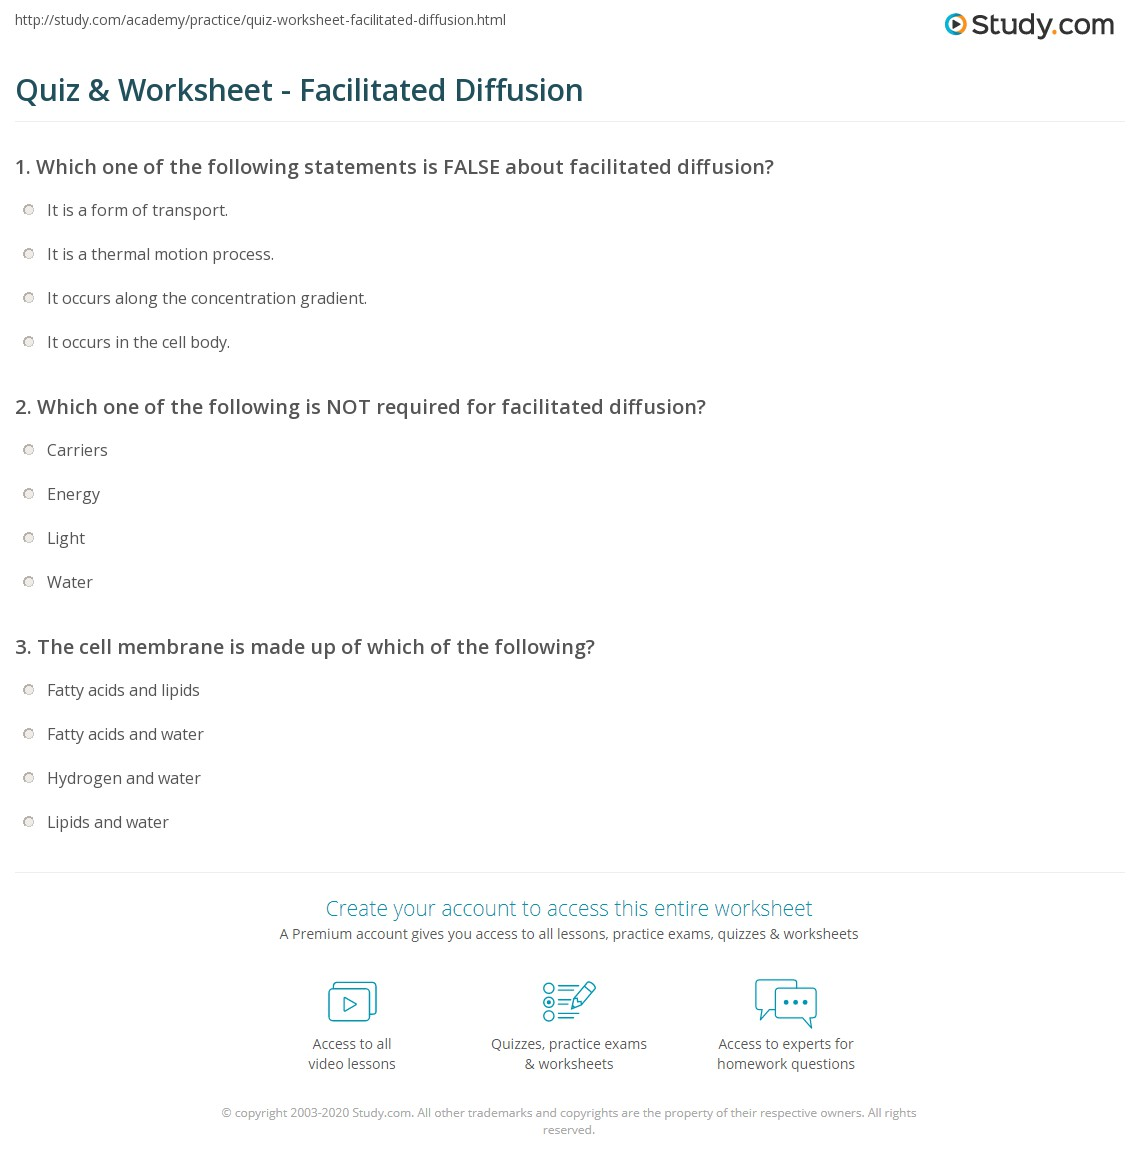 Worksheets Facilitated Diffusion Worksheet Answers of facilitated diffusion worksheet sharebrowse collection sharebrowse